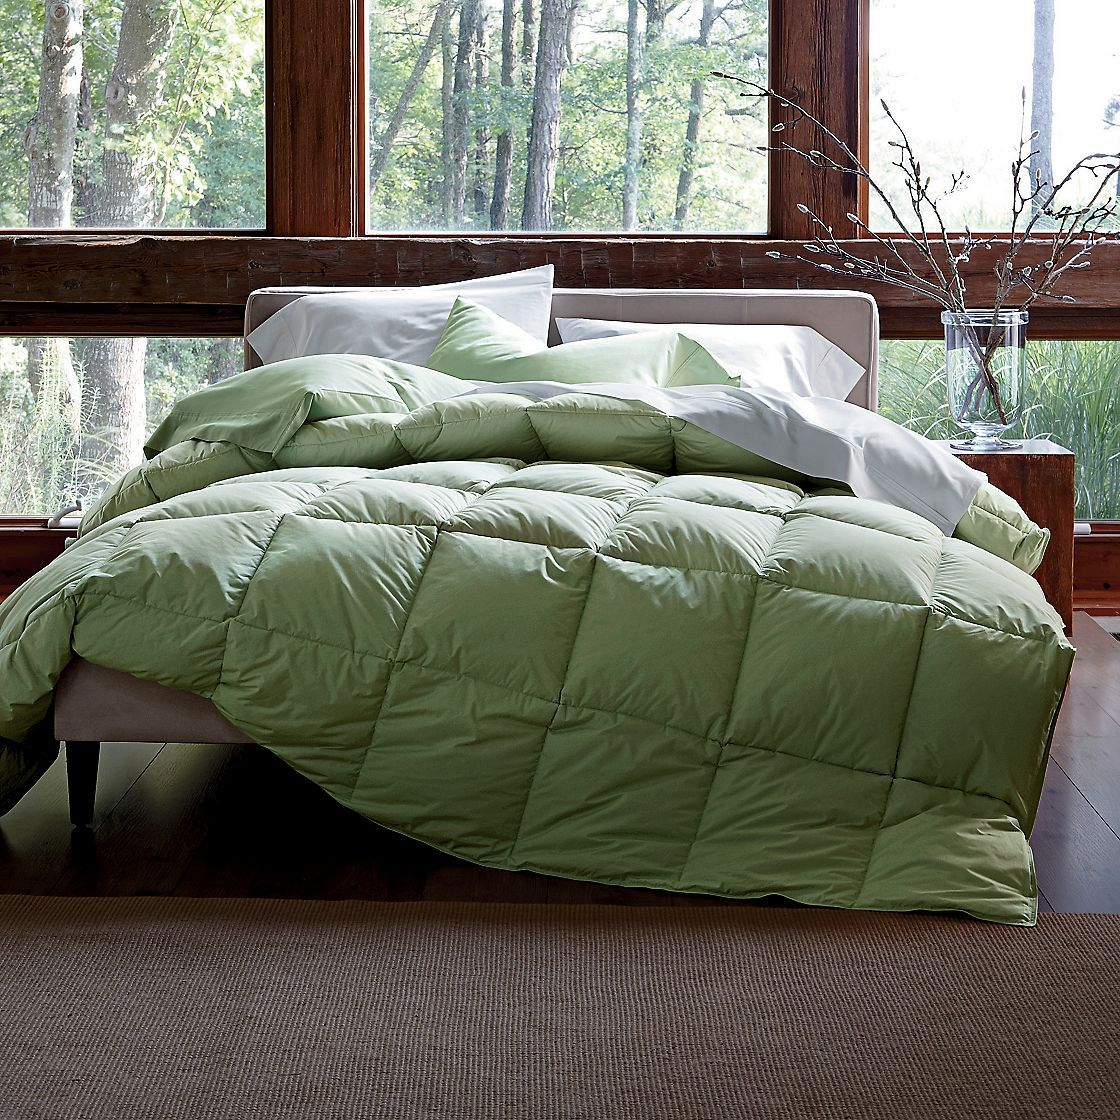 goose comforter fill striped season weight feather closeup oversized all down power white